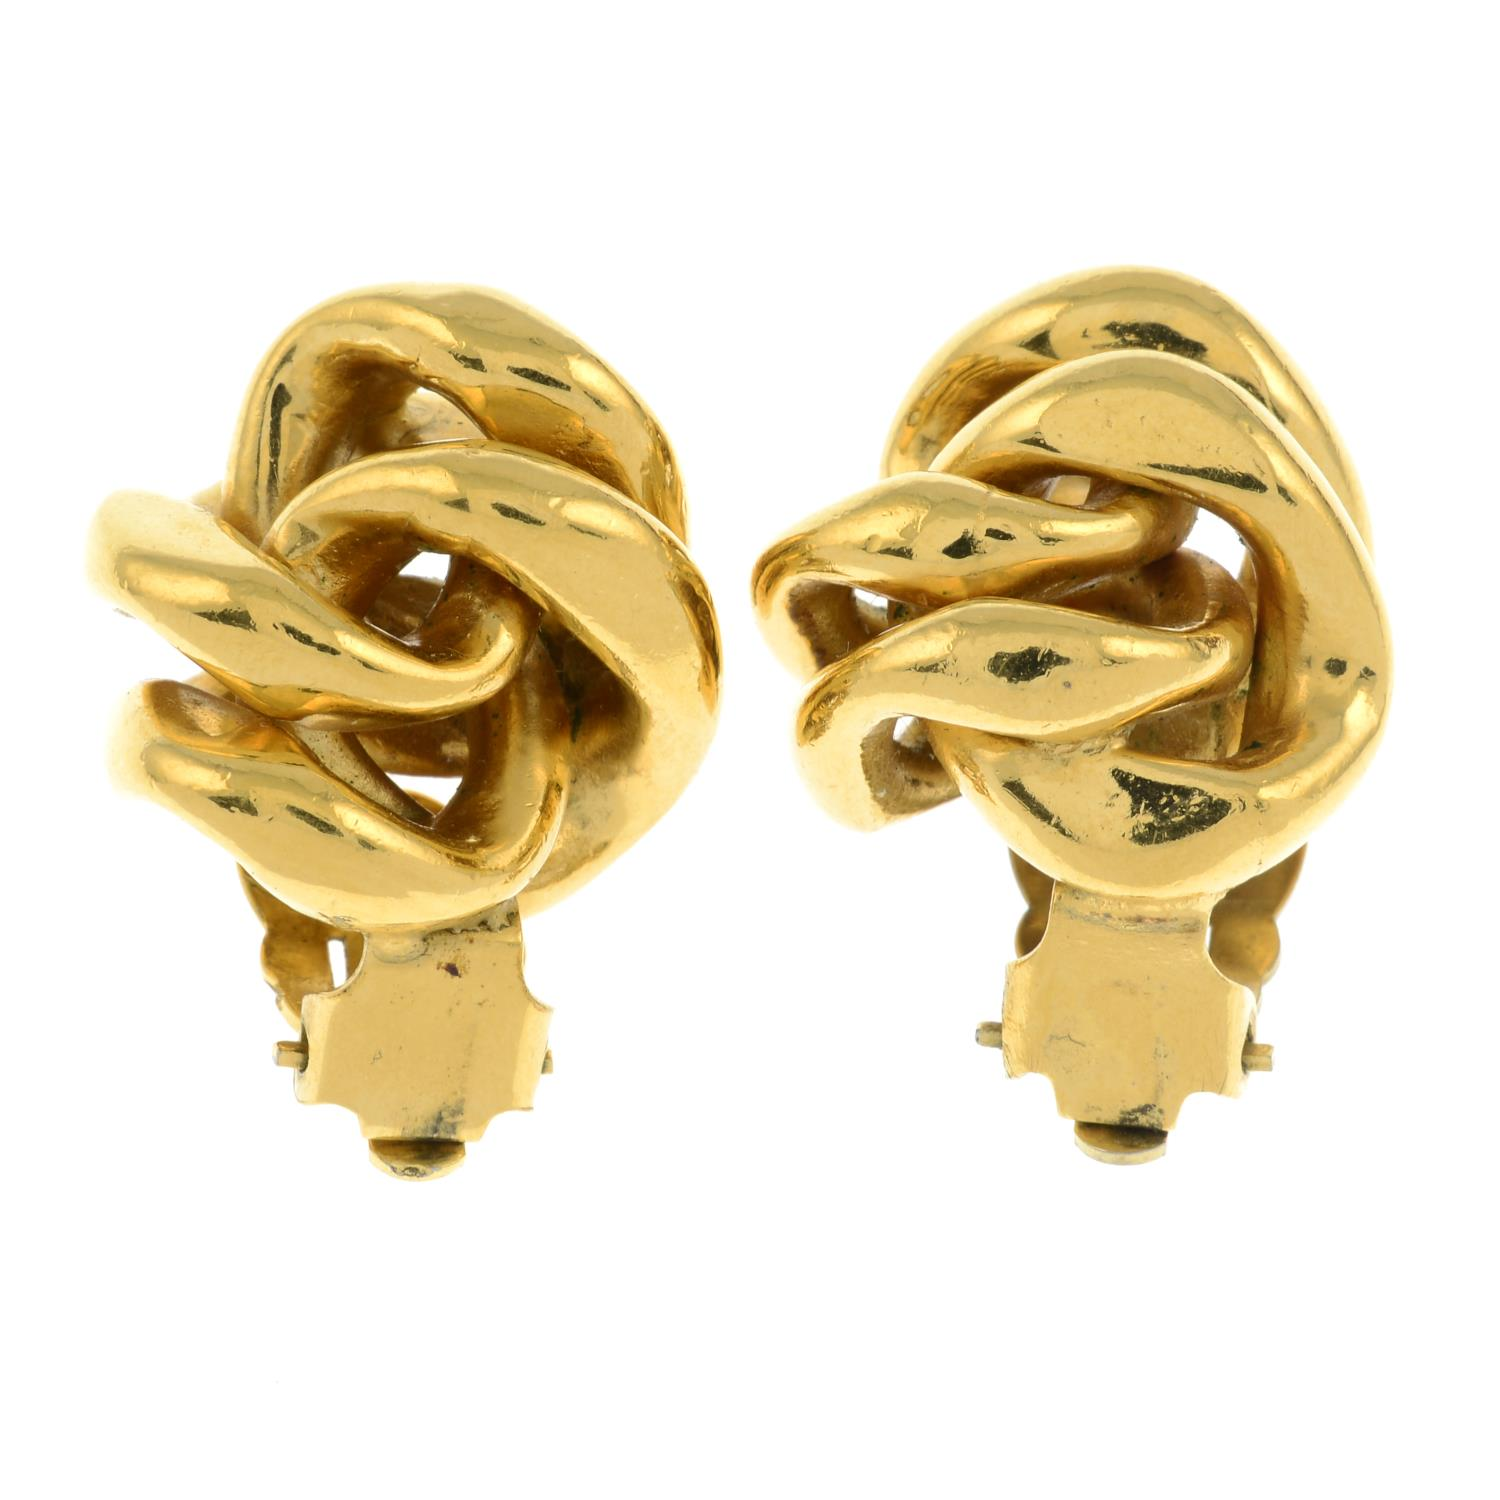 A pair of clip-on earrings, by Chanel.Signed Chanel.